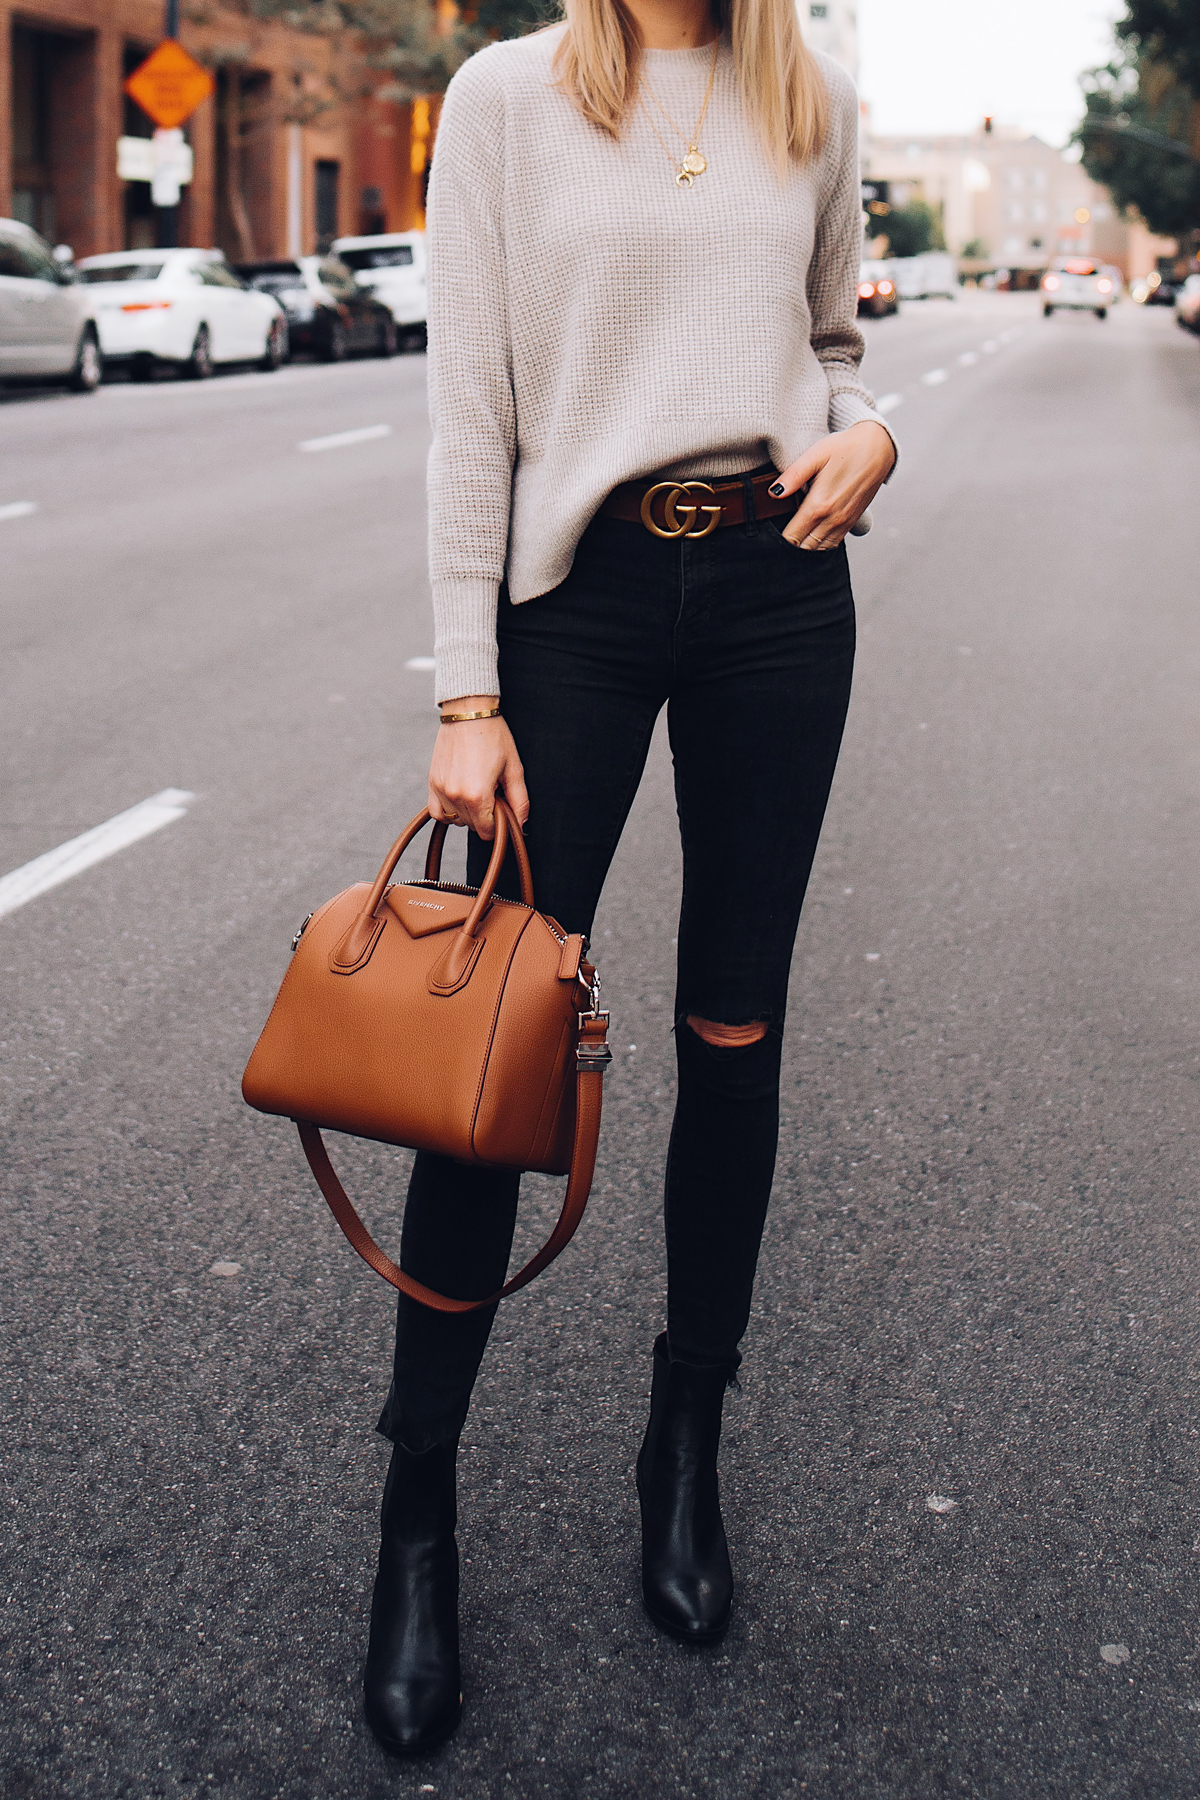 Woman Wearing Everlane Taupe Cashmere Sweater Black Ripped Skinny Jeans Brown Gucci Logo Belt Black Booties Givenchy Anitogona Cognac Handbag Fashion Jackson San Diego Fashion Blogger Street Style